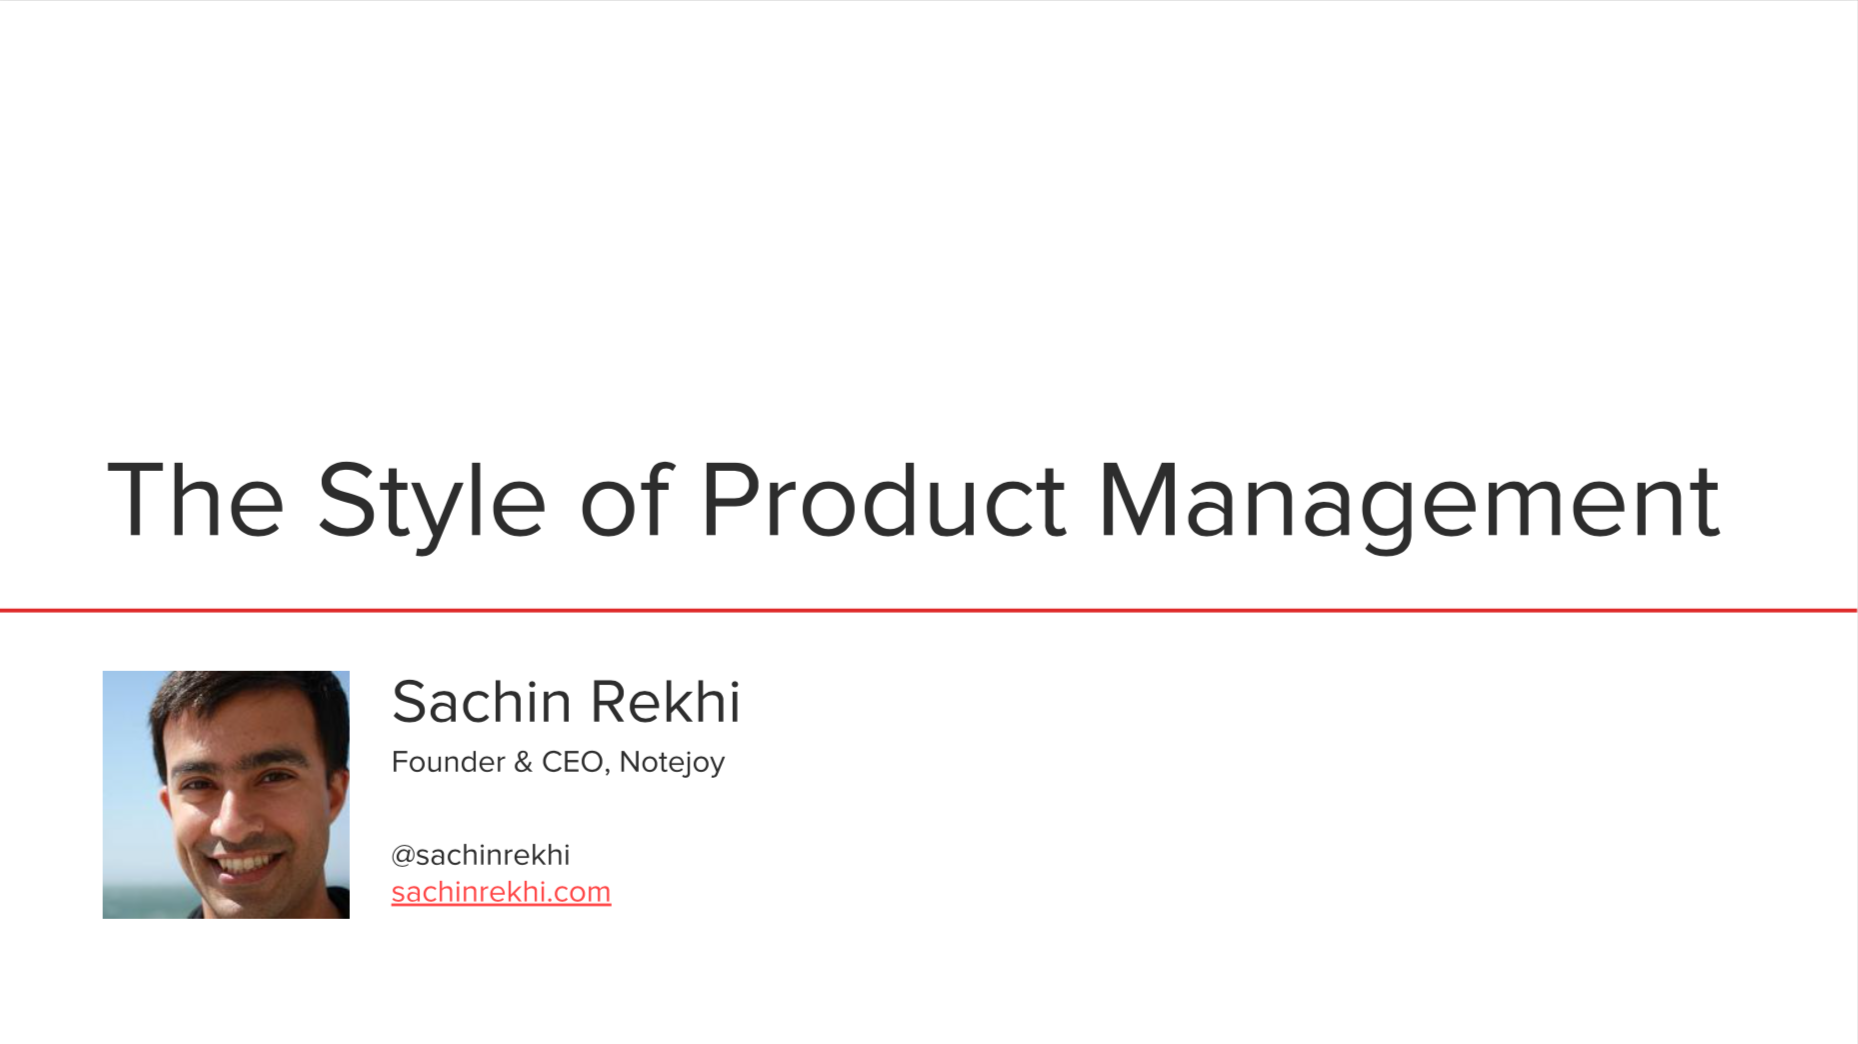 The Style of Product Management